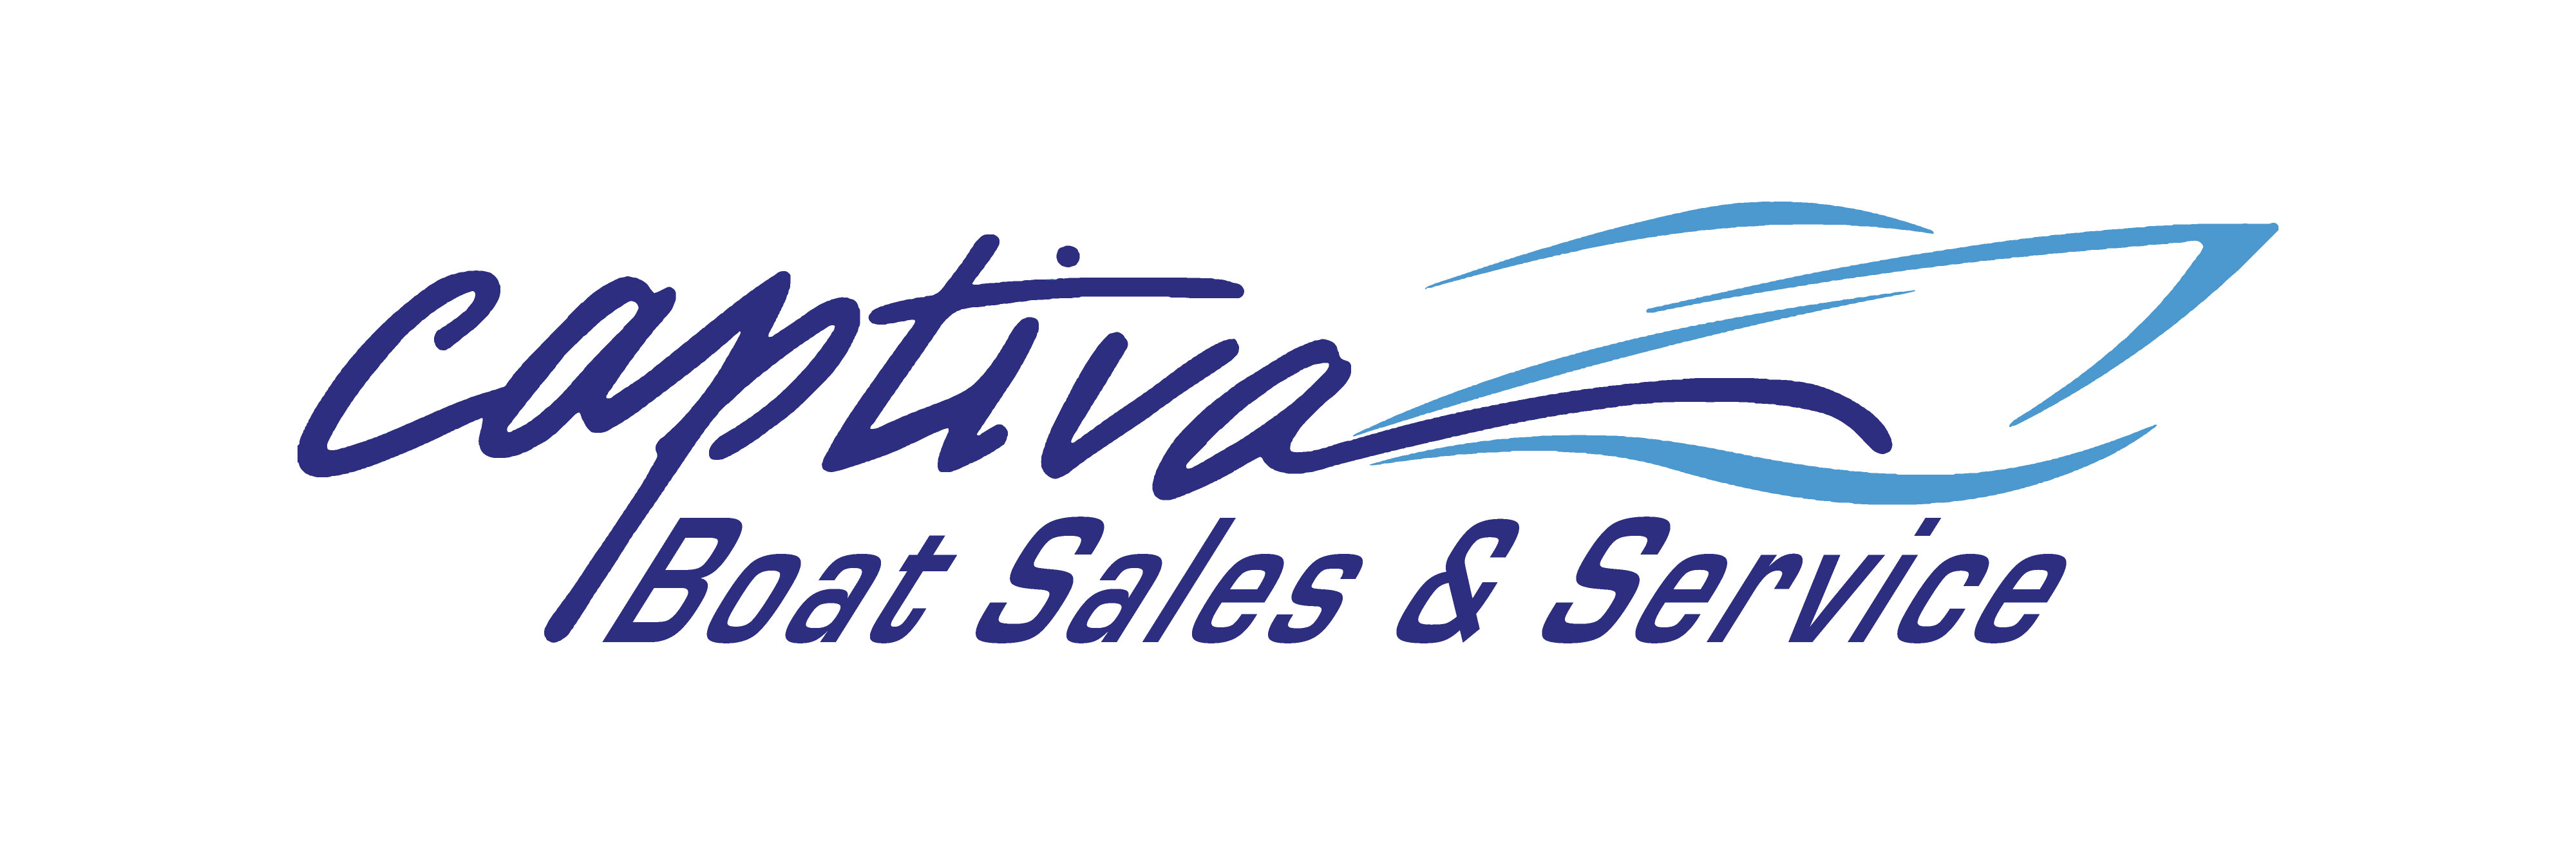 Captiva Boat Sales and Service